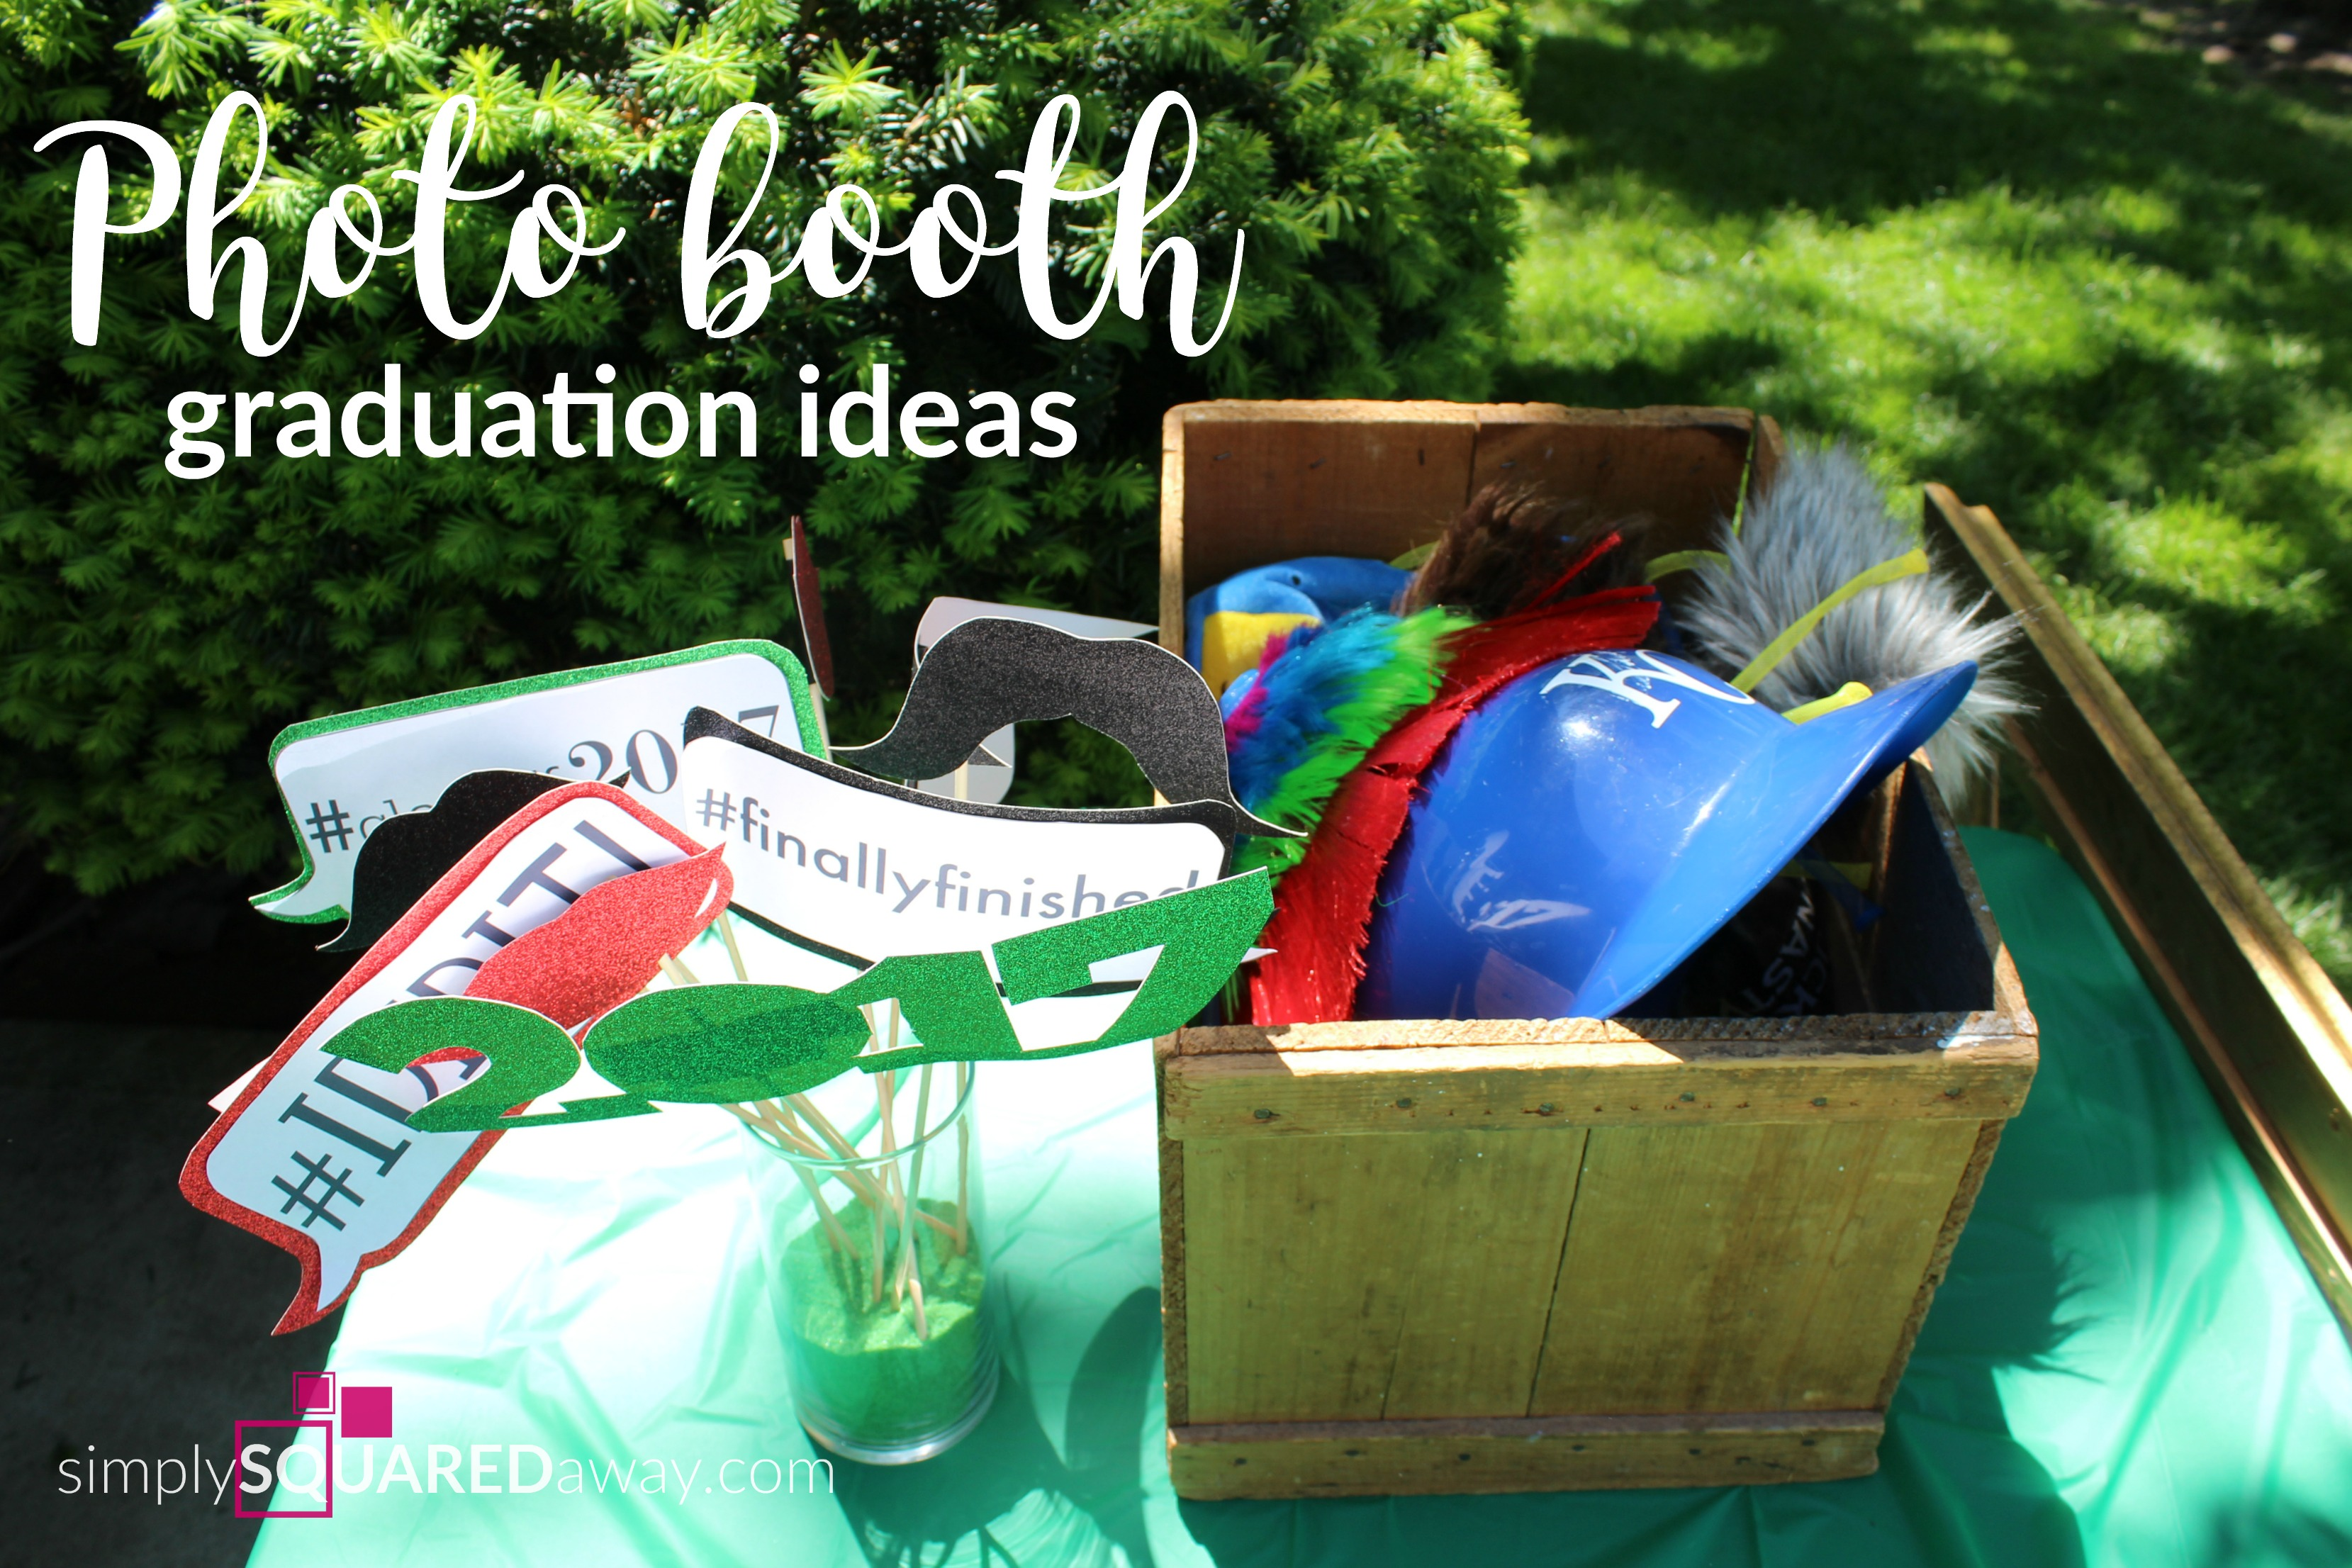 Graduation party ideas and step-by-step organizing tips to help you plan the perfect celebration for your graduate.